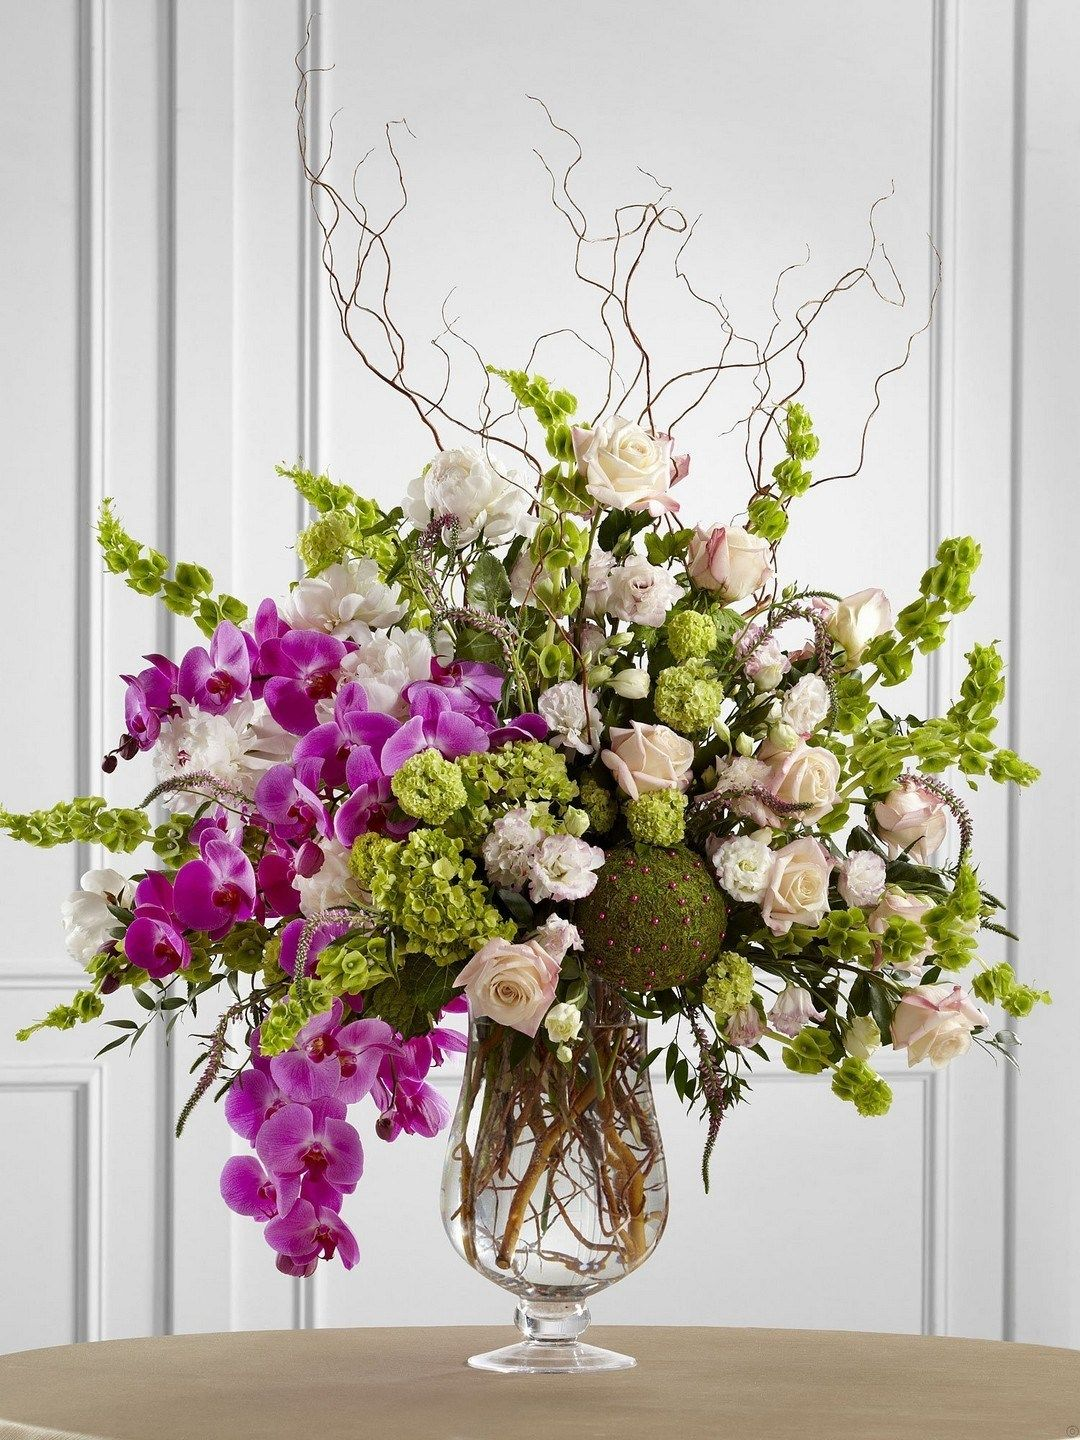 Best Orchid Arrangements With Succulents And Driftwood (7